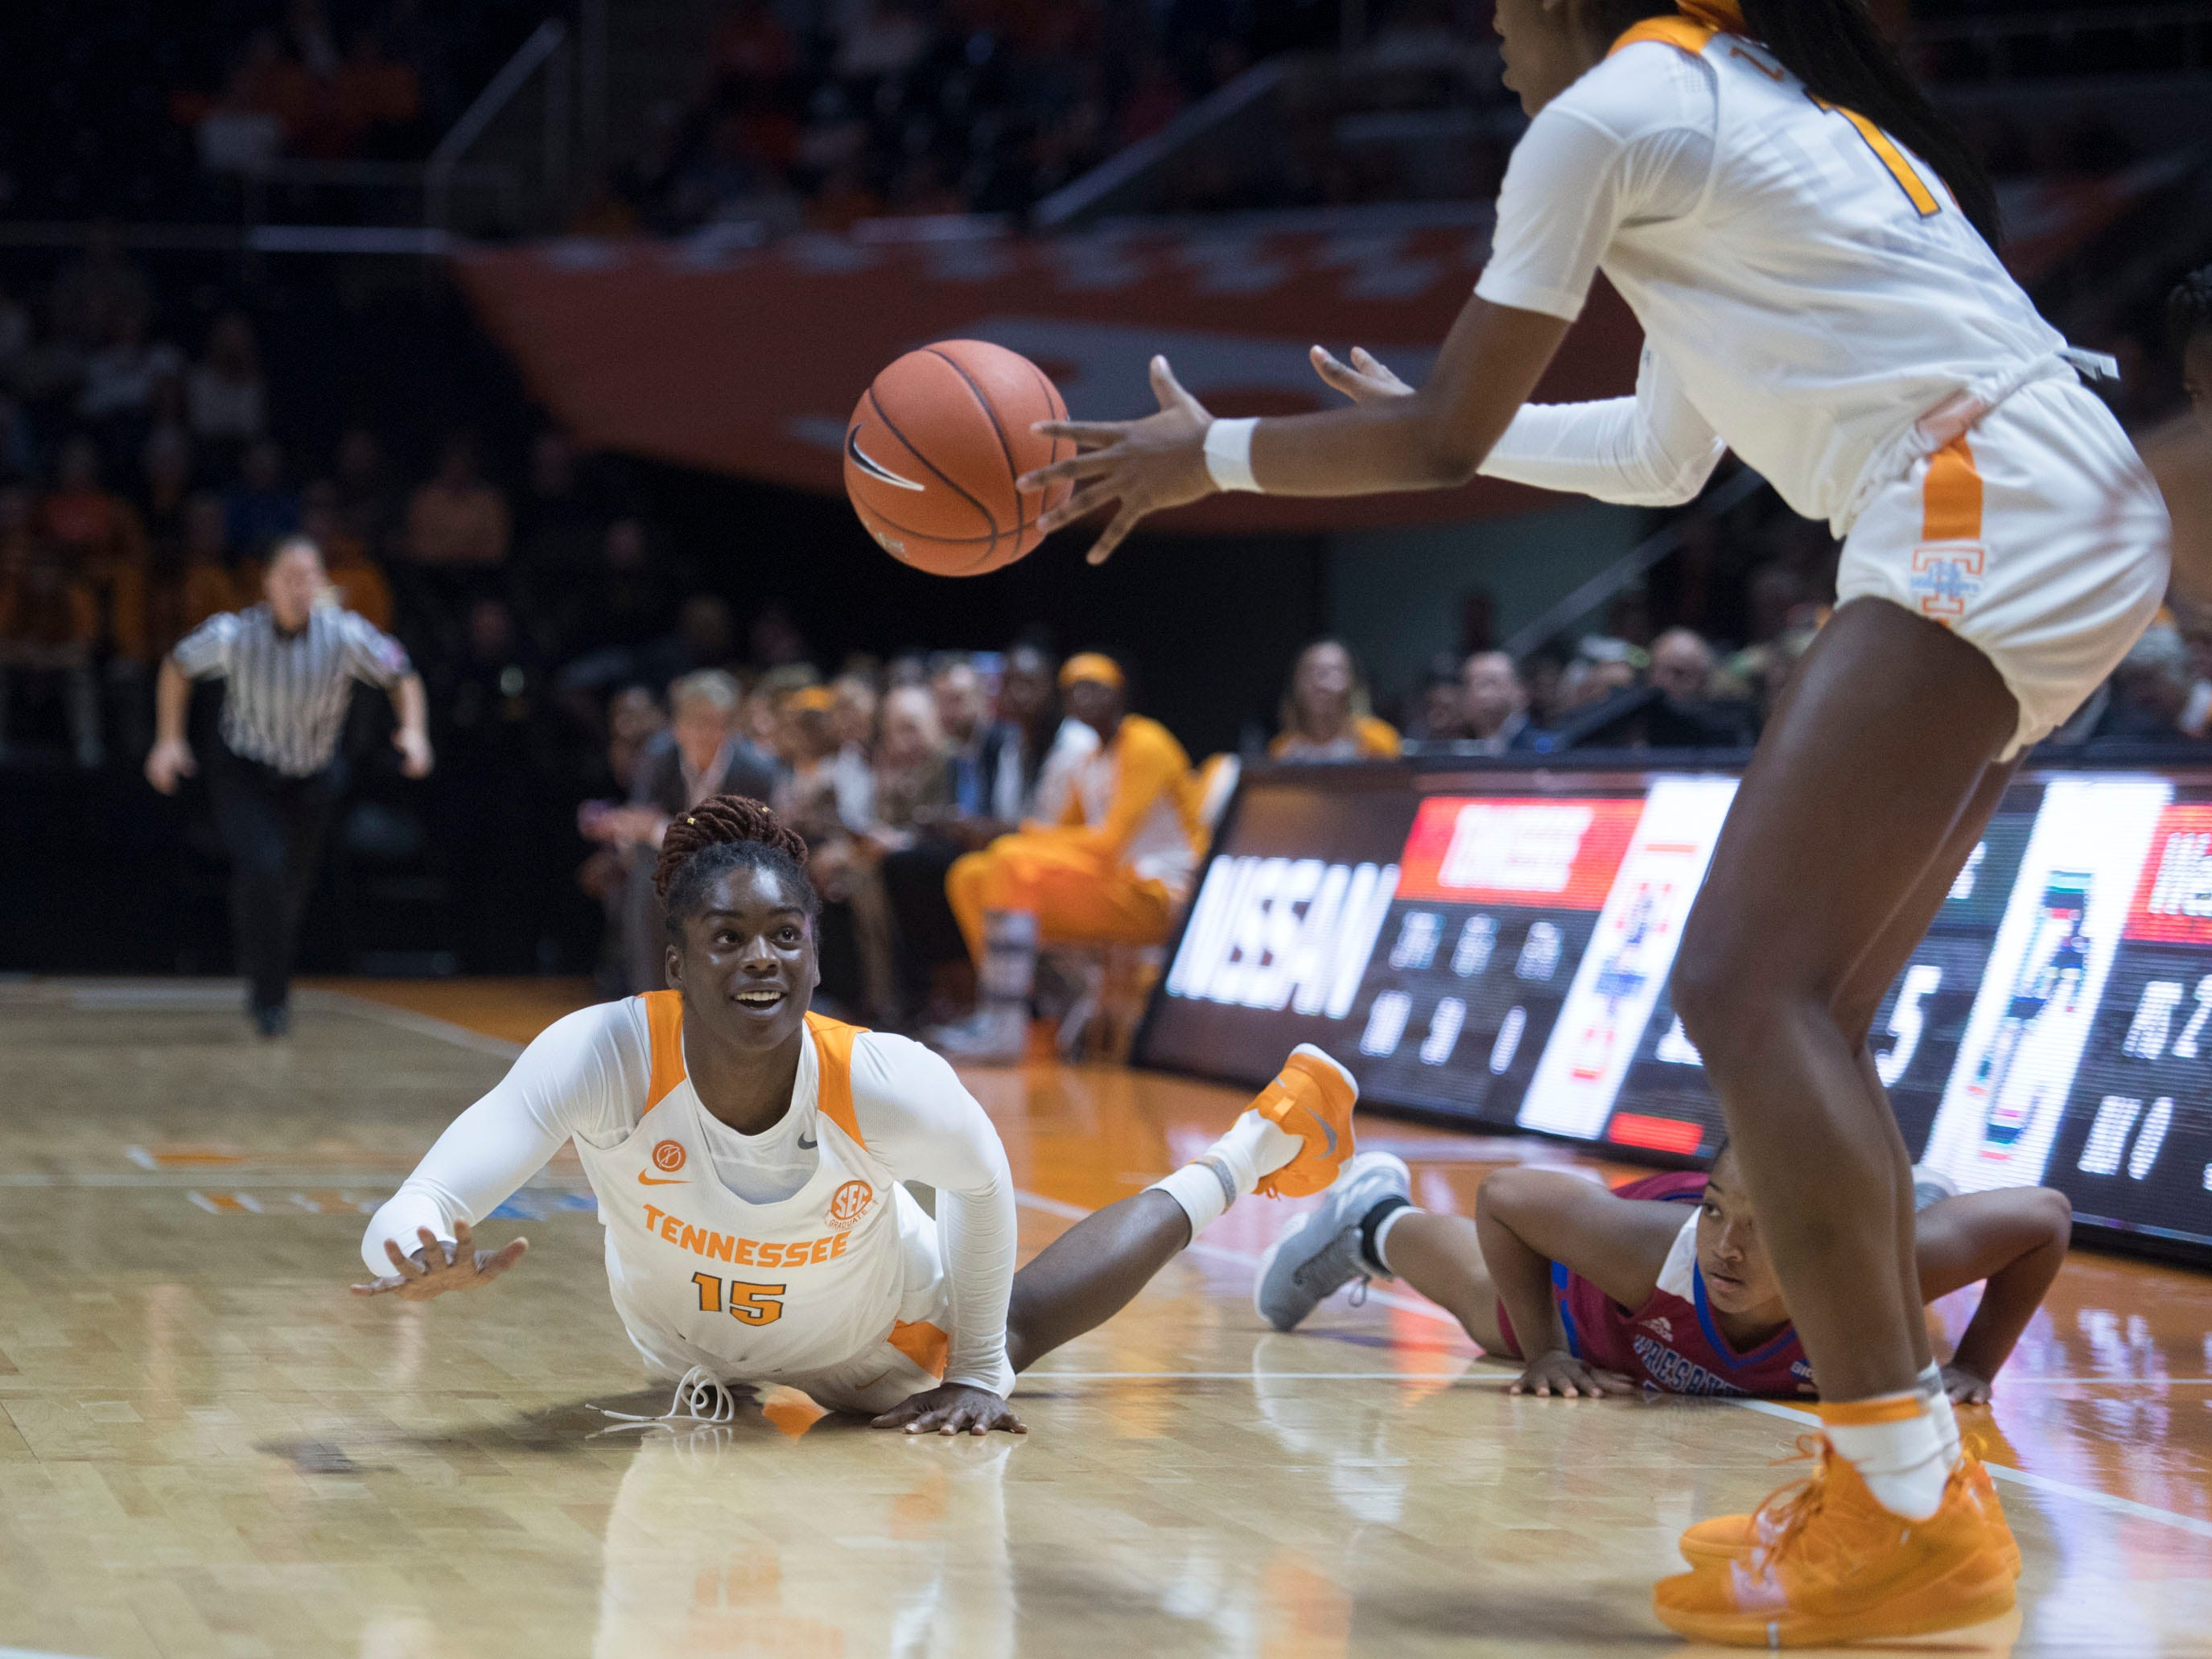 Tennessee's Cheridene Green (15) passes the ball to Zaay Green (14) during the game against Presbyterian on Sunday, November 11, 2018.